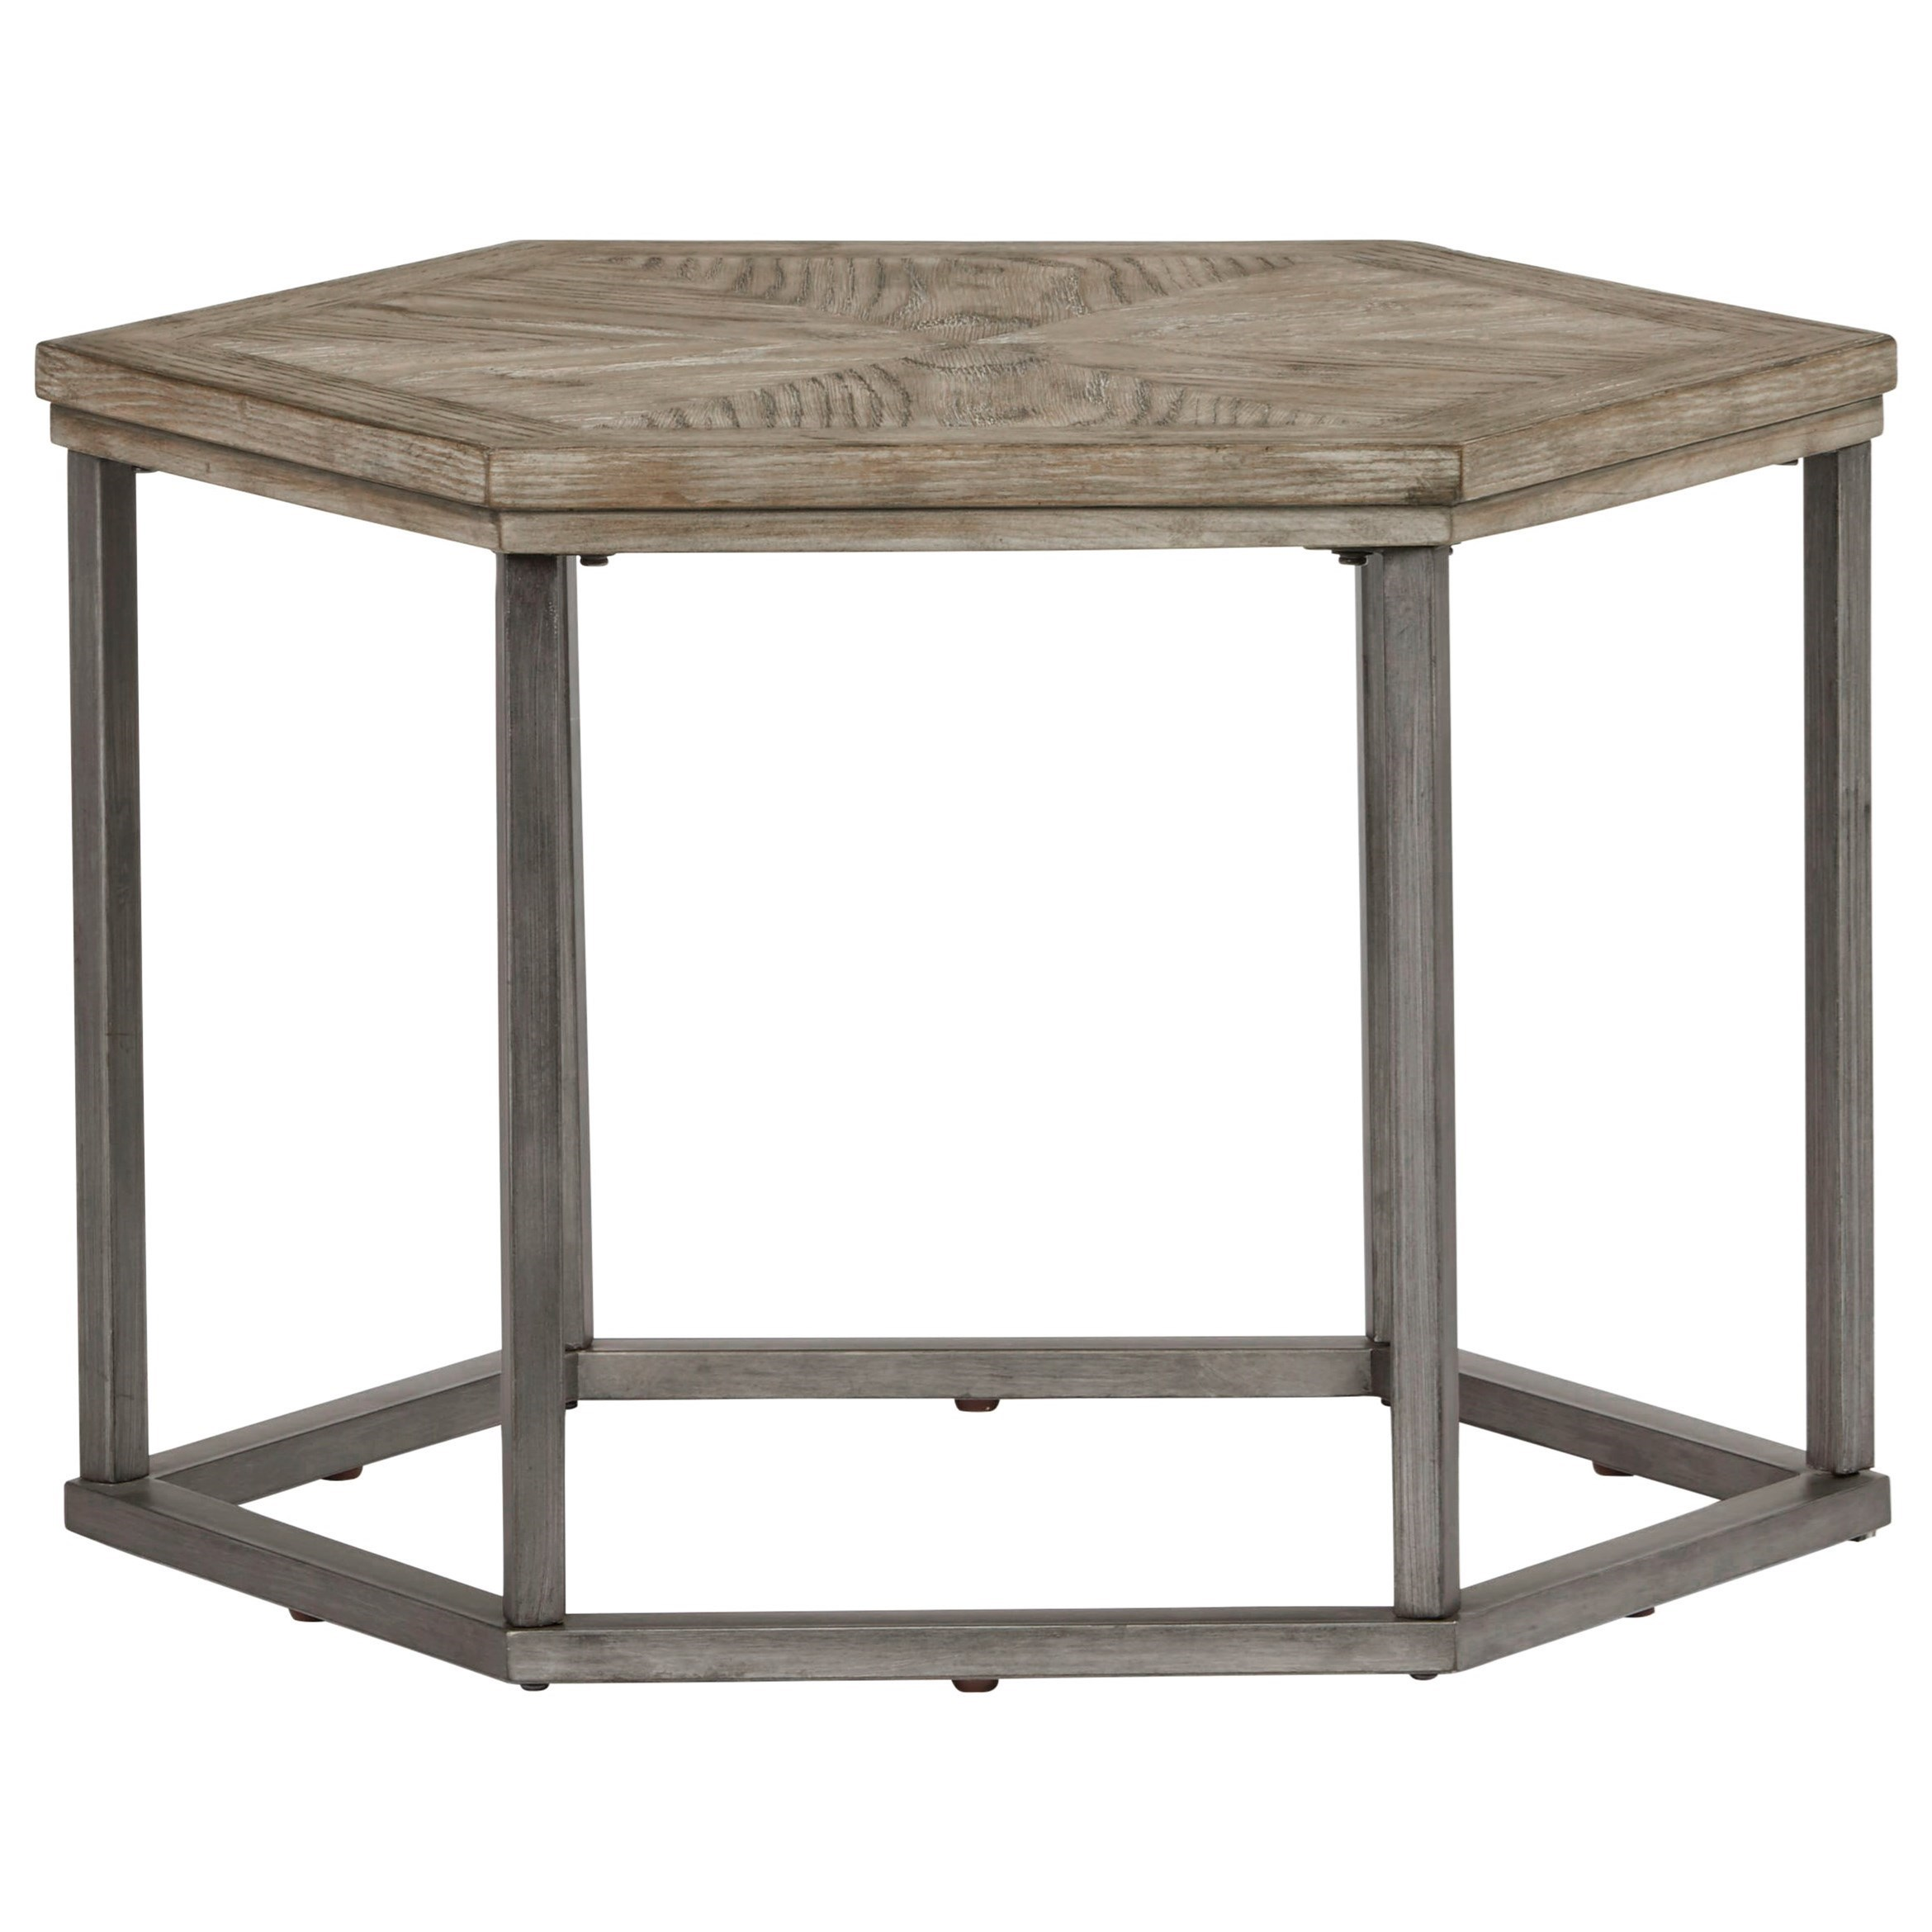 Adison Cove Hexagon Bunching Cocktail Table by Progressive Furniture at Catalog Outlet